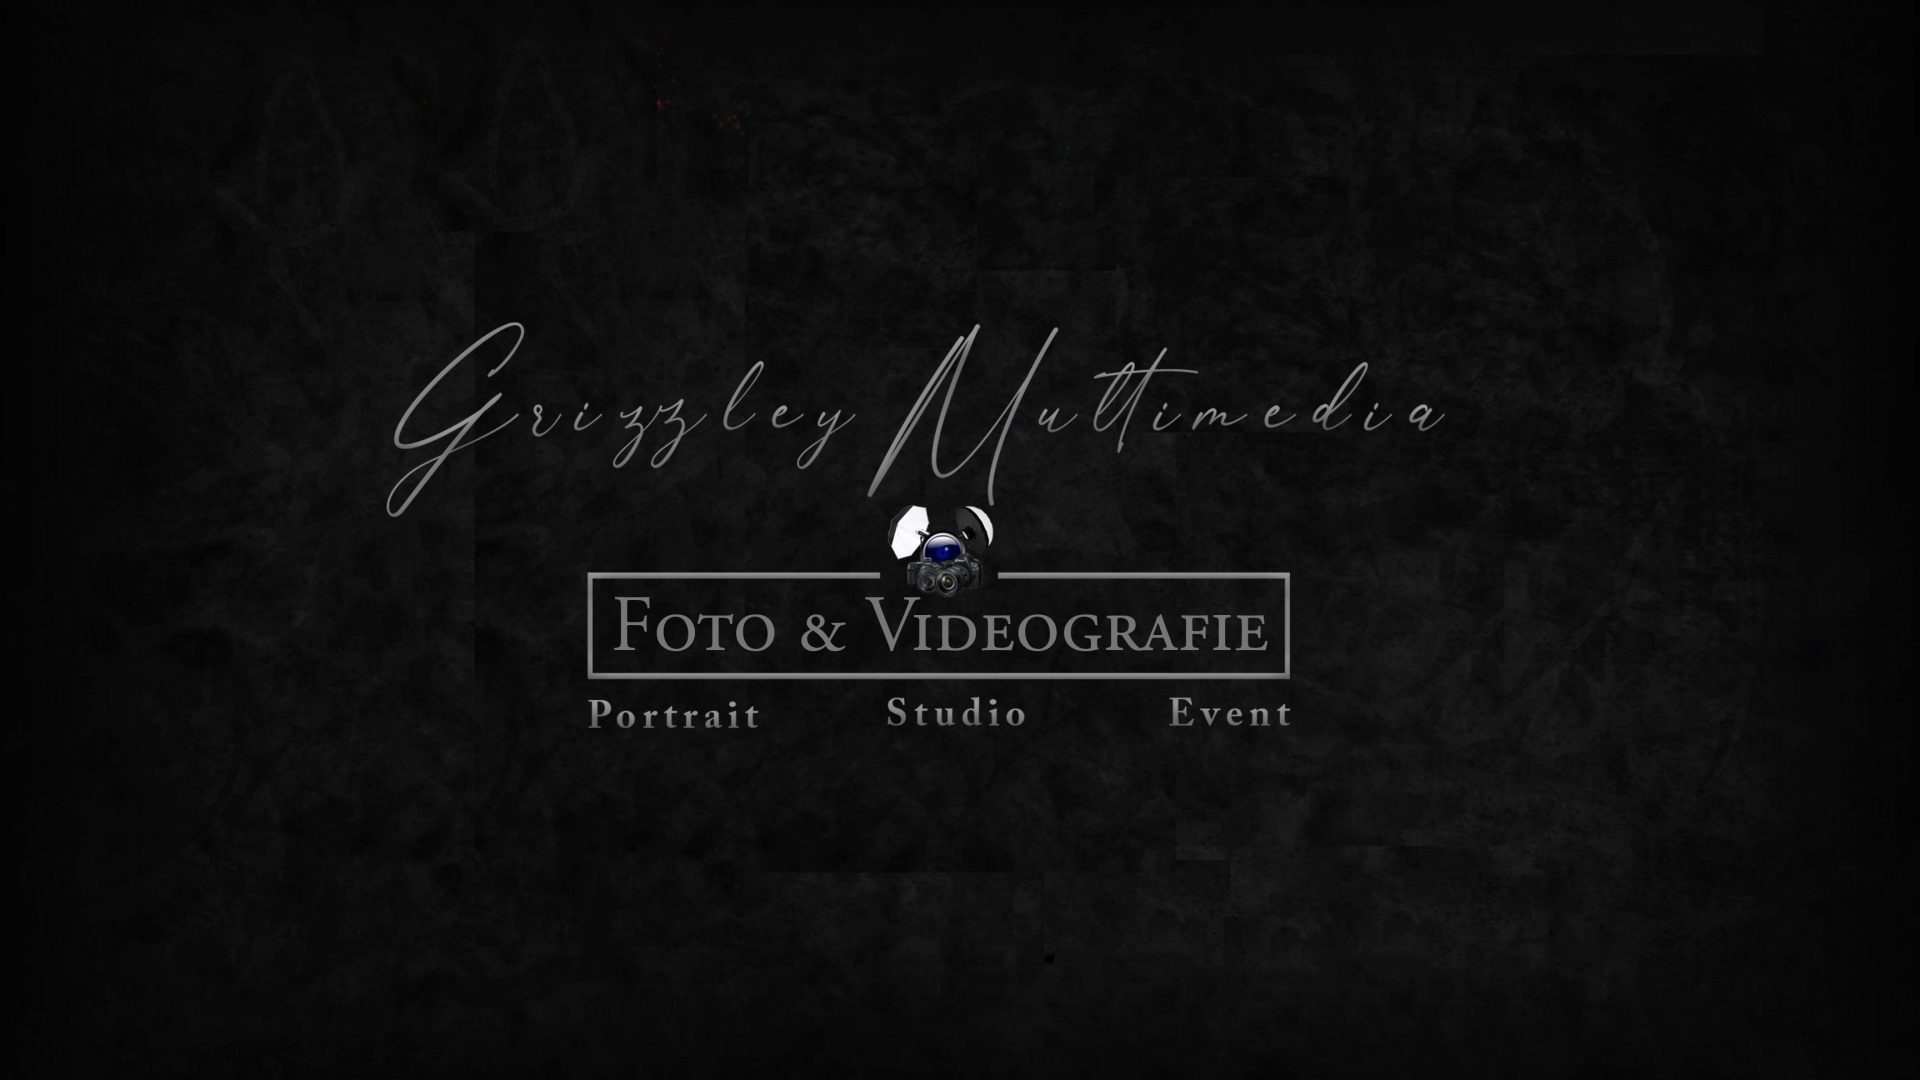 GrizzleyMultimedia